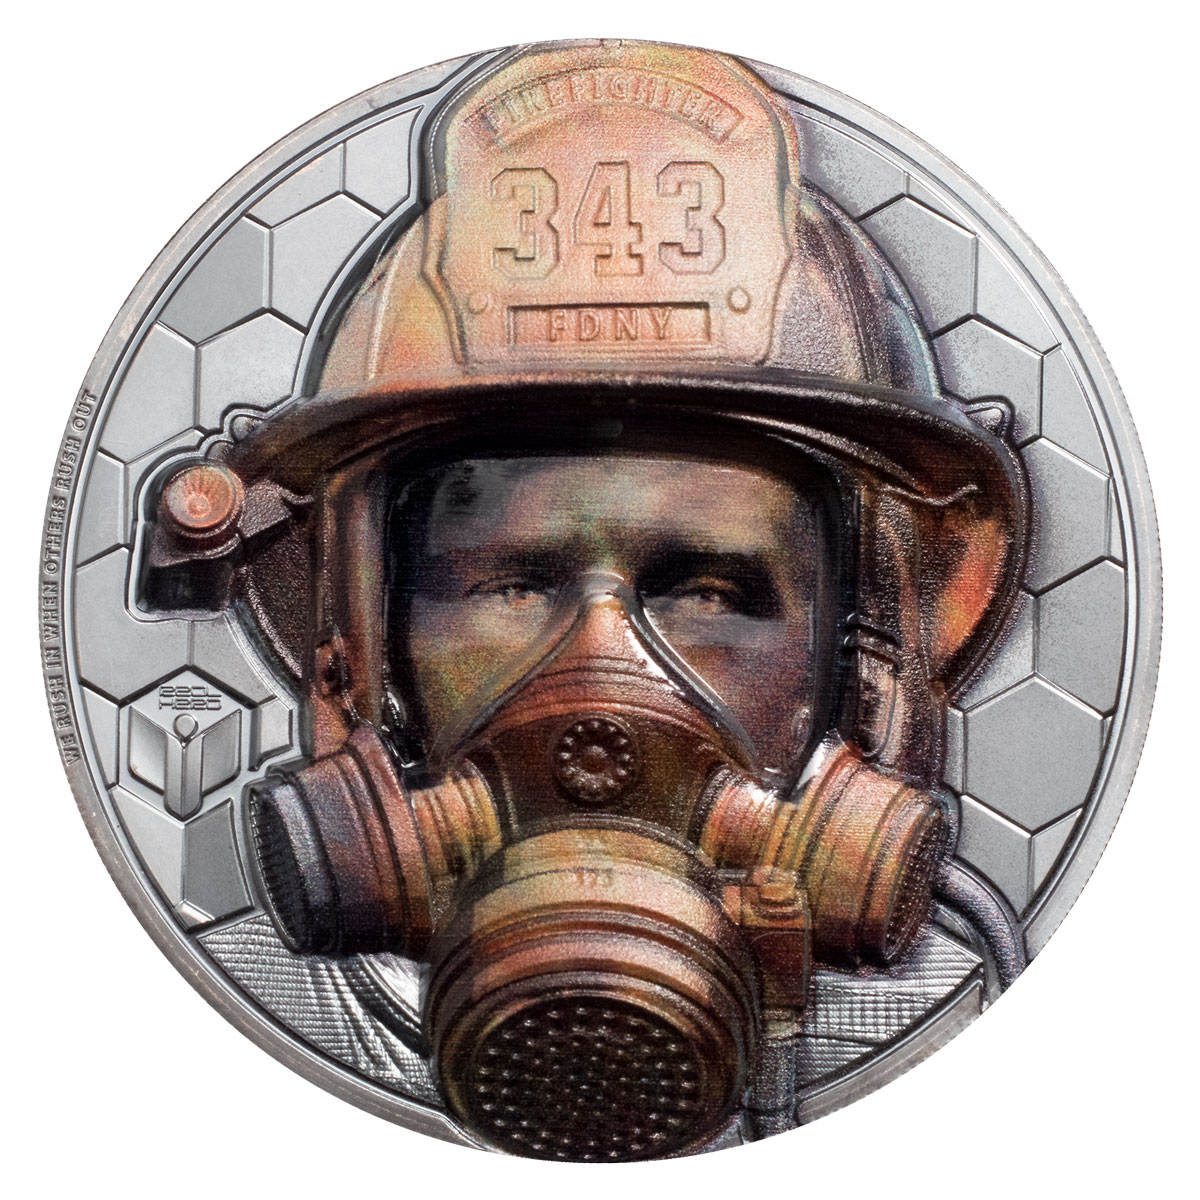 2021 Cook Islands Real Heroes - Firefighter Ultra High Relief 3 oz Silver Colorized Black Proof $20 Coin GEM Proof OGP